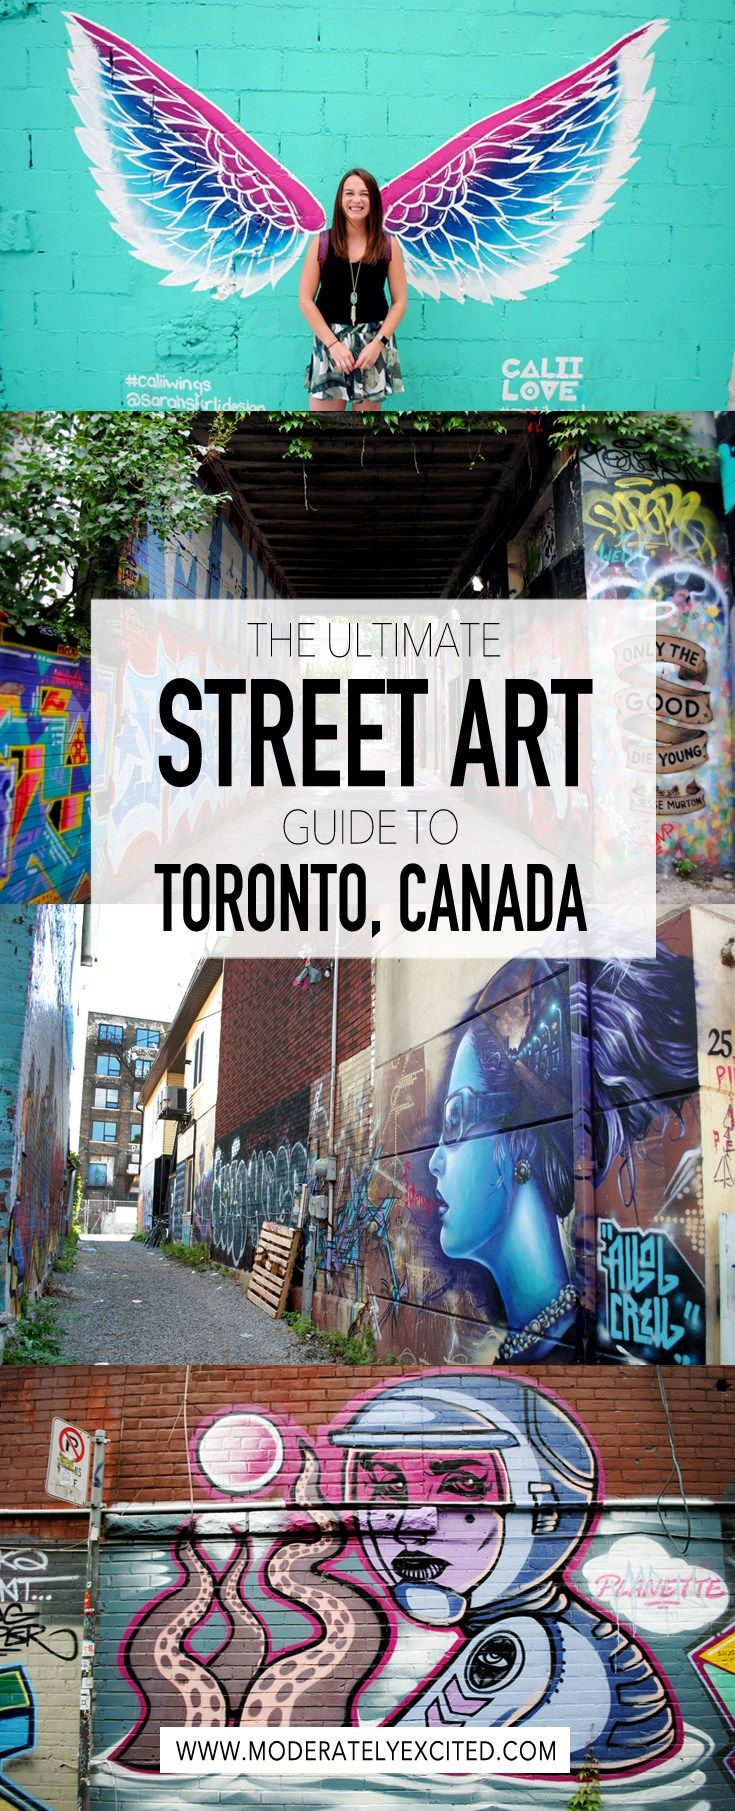 Toronto Eh The Moderately Exciting Guide To 48 Hours In Toronto Canada Toronto Travel Canada Travel Canada Travel Guide